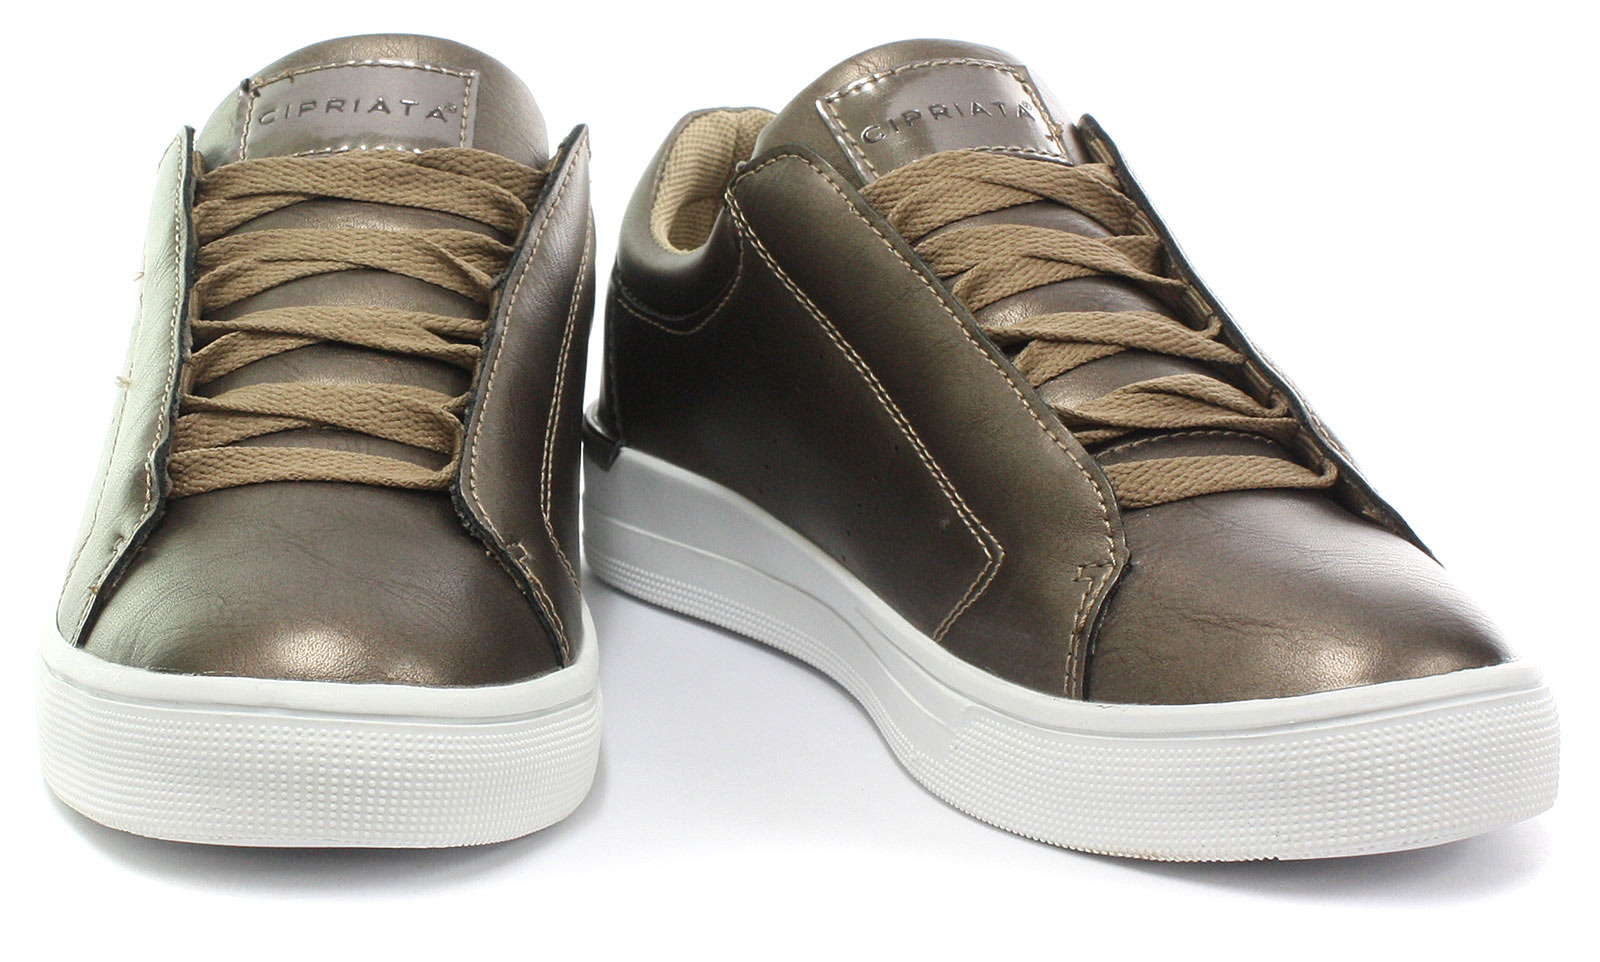 New-Cipriata-Alberta-Bronze-Womens-Glamour-Casual-Trainers-ALL-SIZES miniature 2